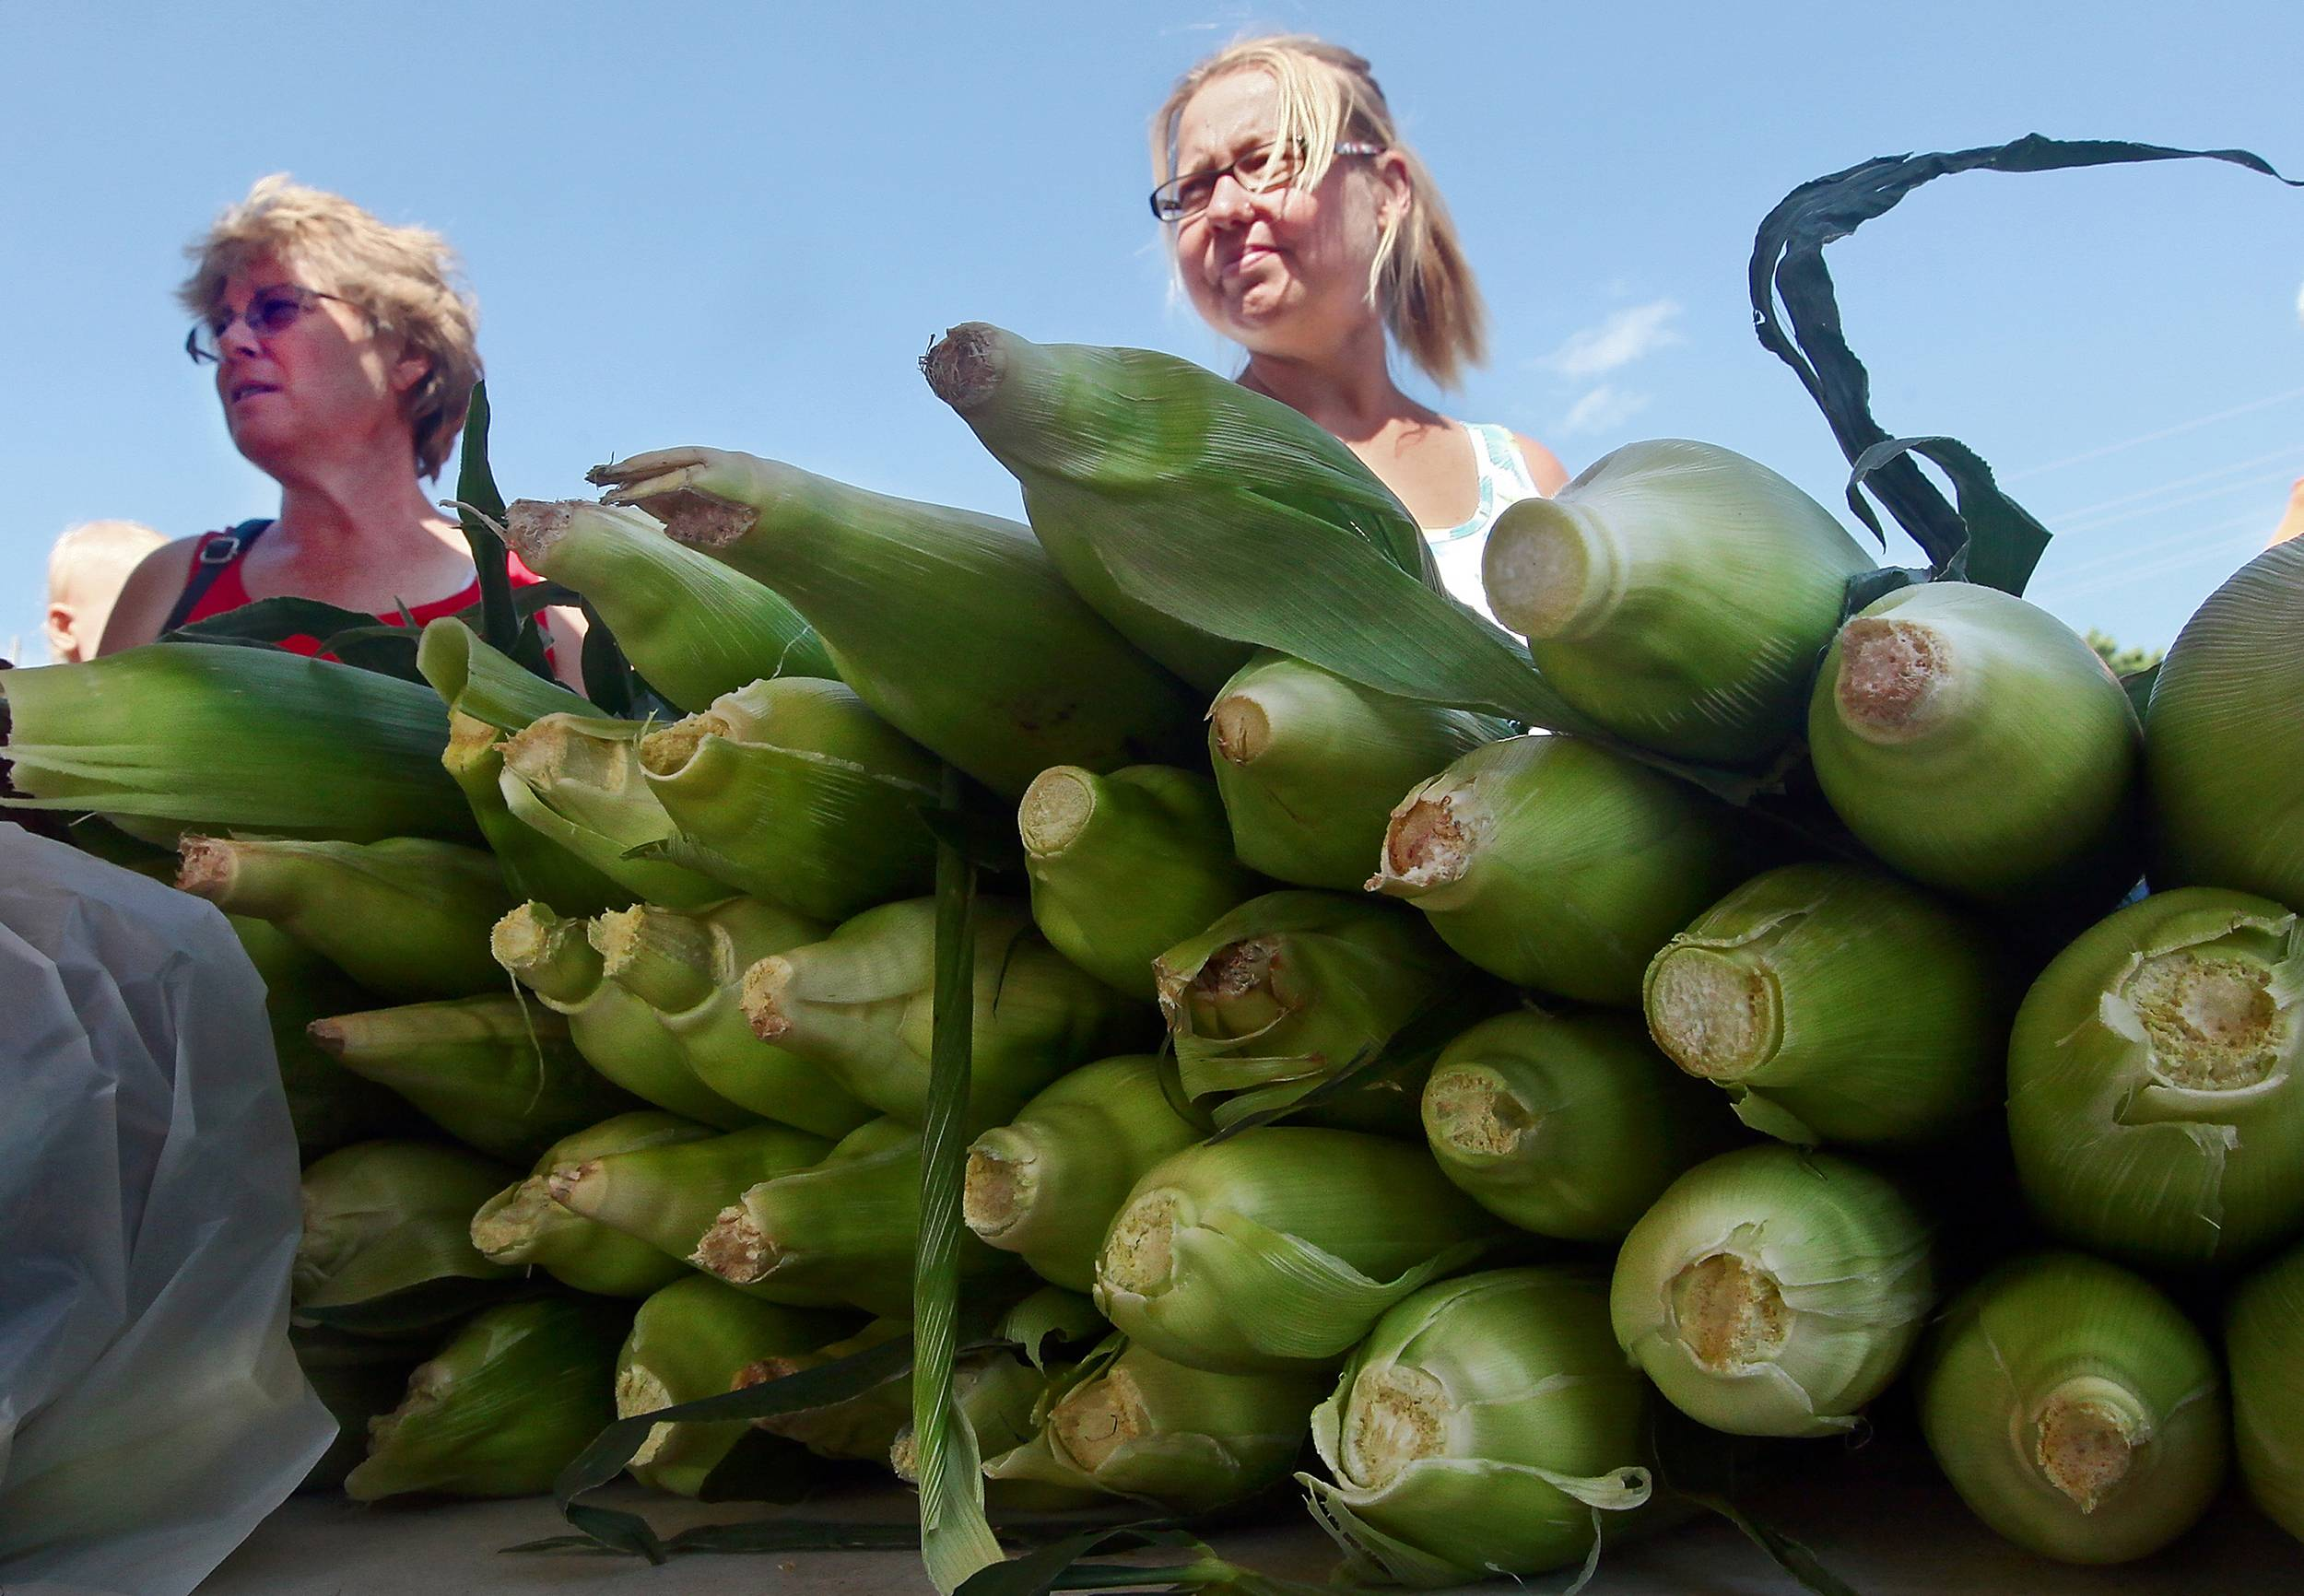 Ellen Stice, left, and Melinda Deeds, talk to one of the venders about his produce at the Farmers Market behind The Quincy Mall in Quincy,